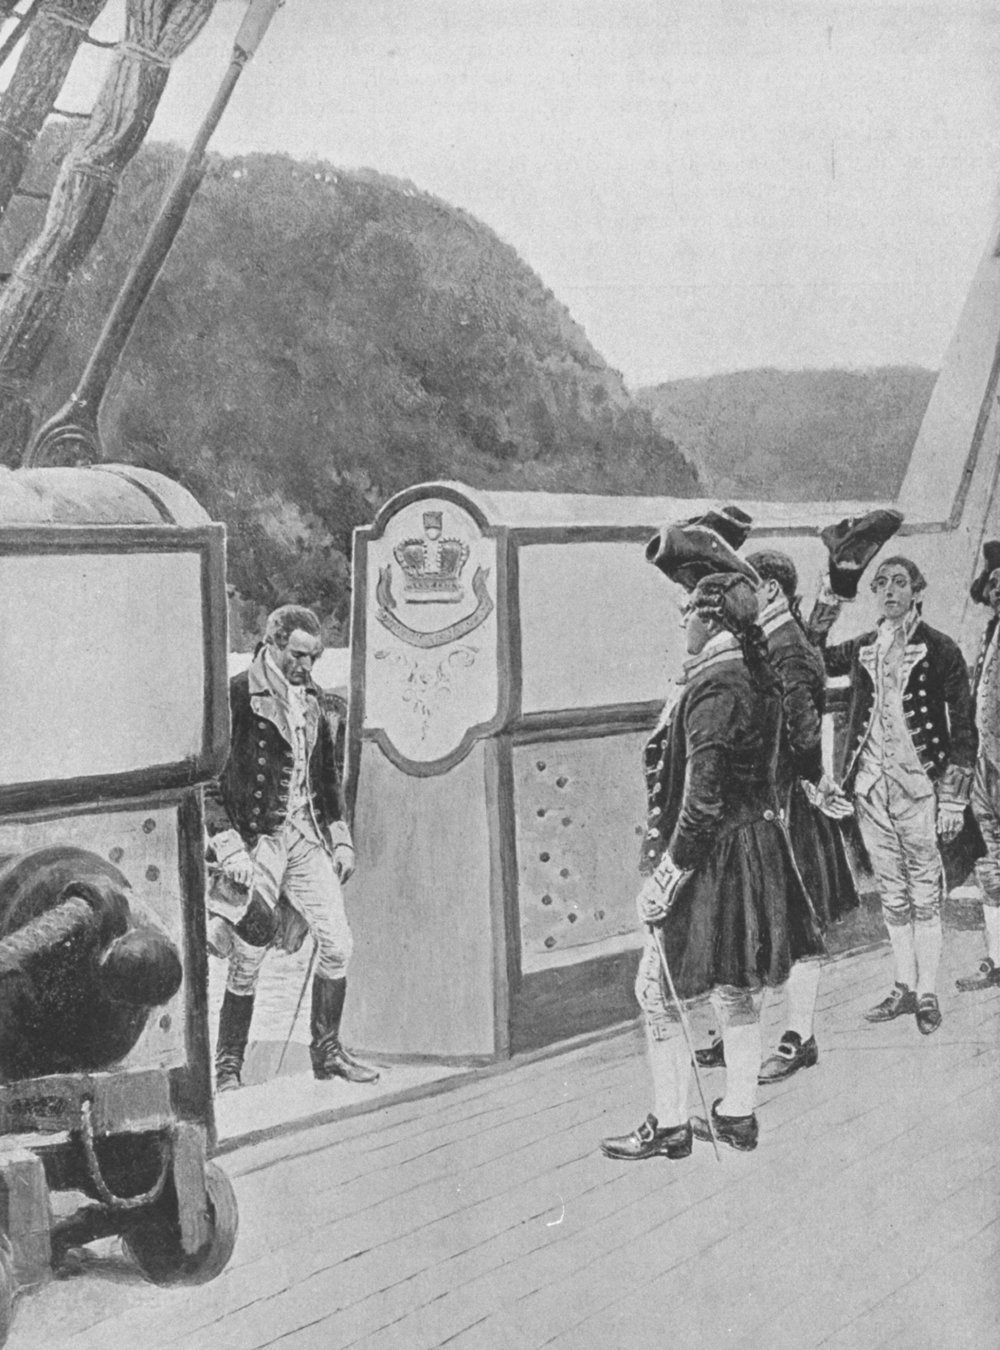 The escape of American Revolutionary general and traitor Benedict Arnold onto the British ship Vulture. (Credit: Time Life Pictures/Mansell/The LIFE Picture Collection/Getty Images)